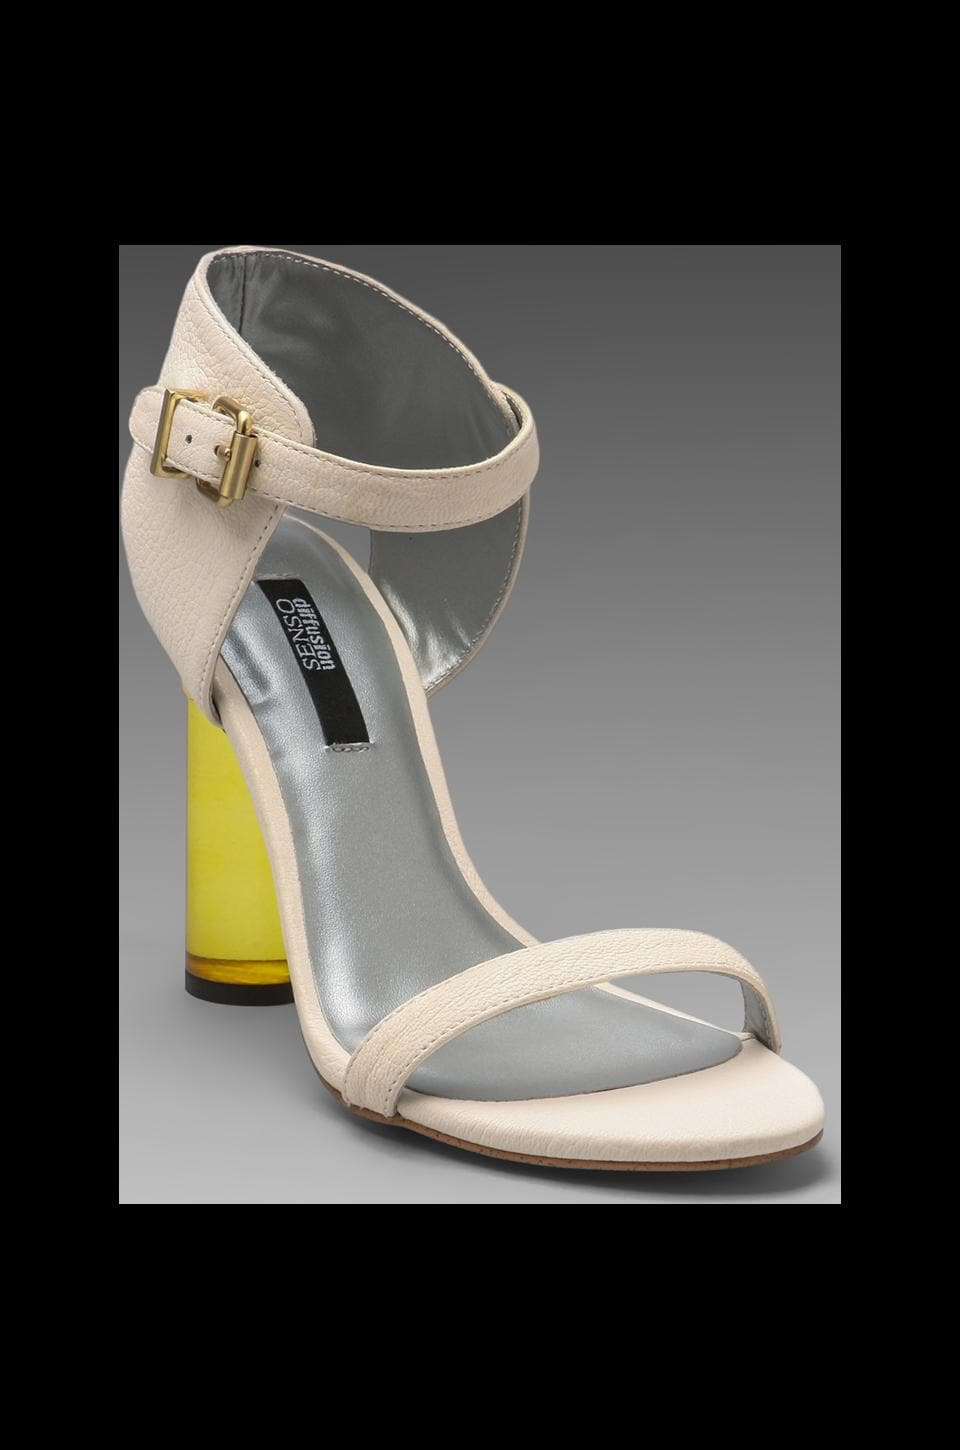 SENSO Sasha Heel in White/Gold